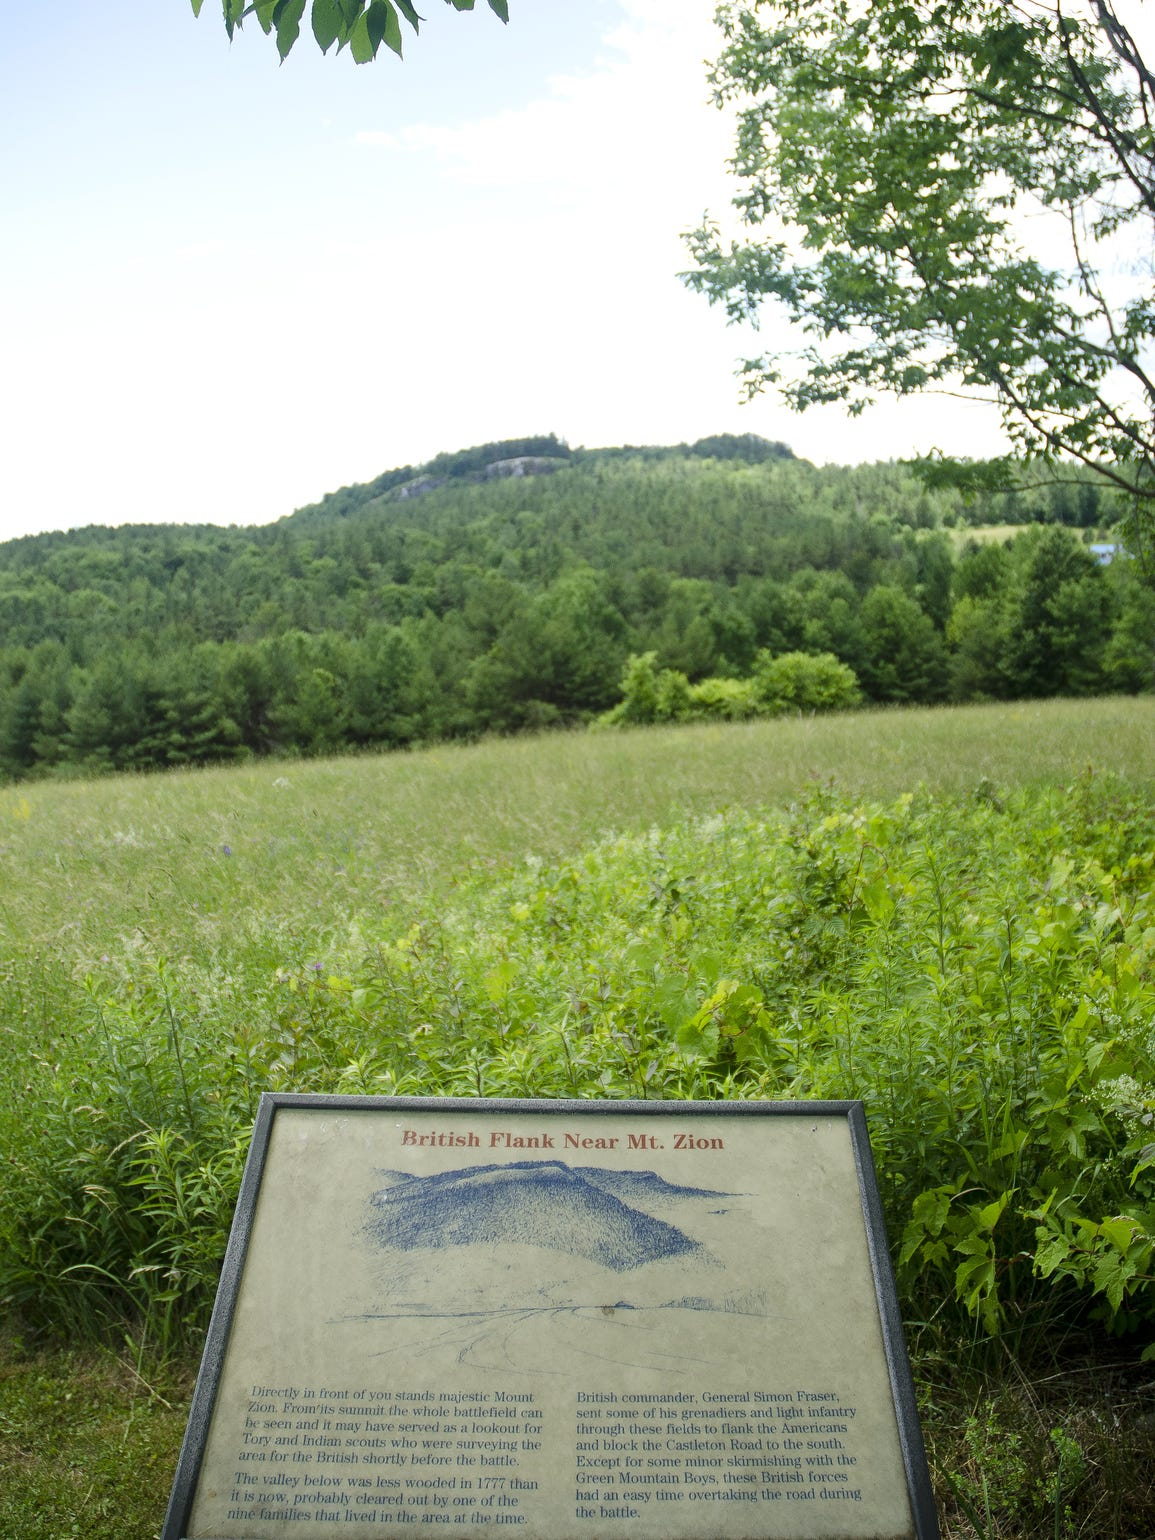 With Mount Zion in the distance, a sign describes how